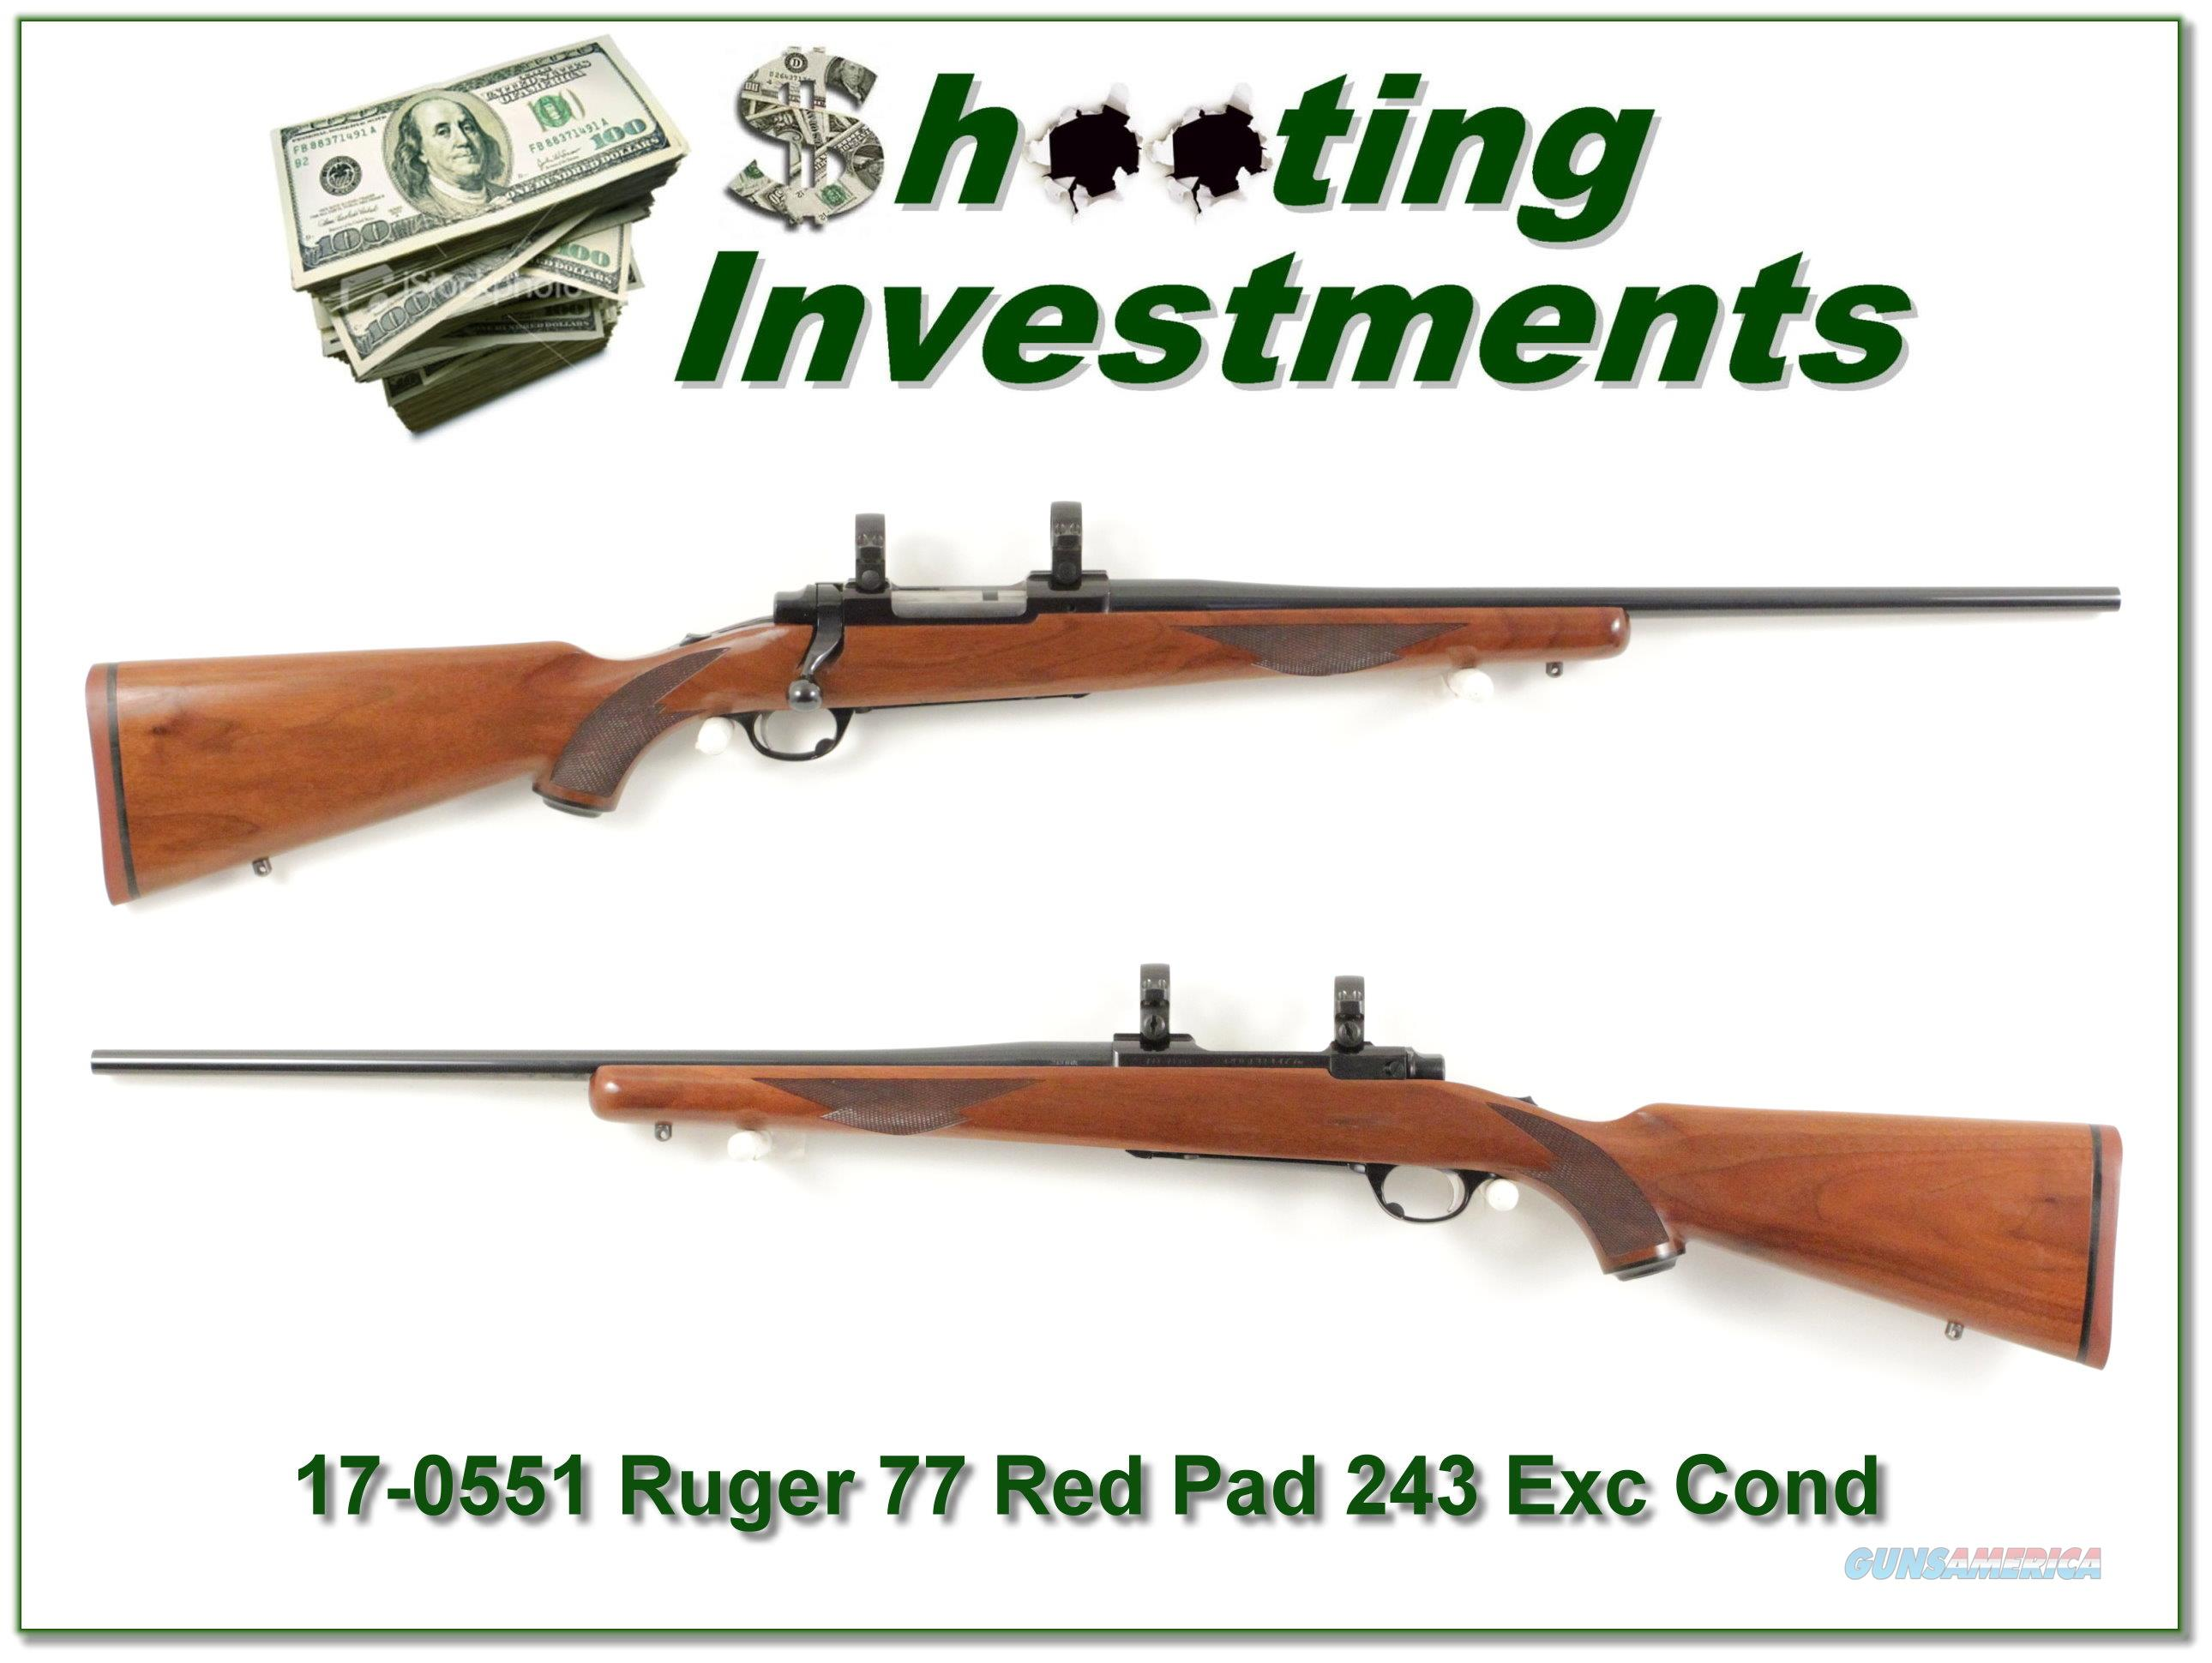 Ruger 77 243 Tang Safety Red Pad Exc Cond!  Guns > Rifles > Ruger Rifles > Model 77